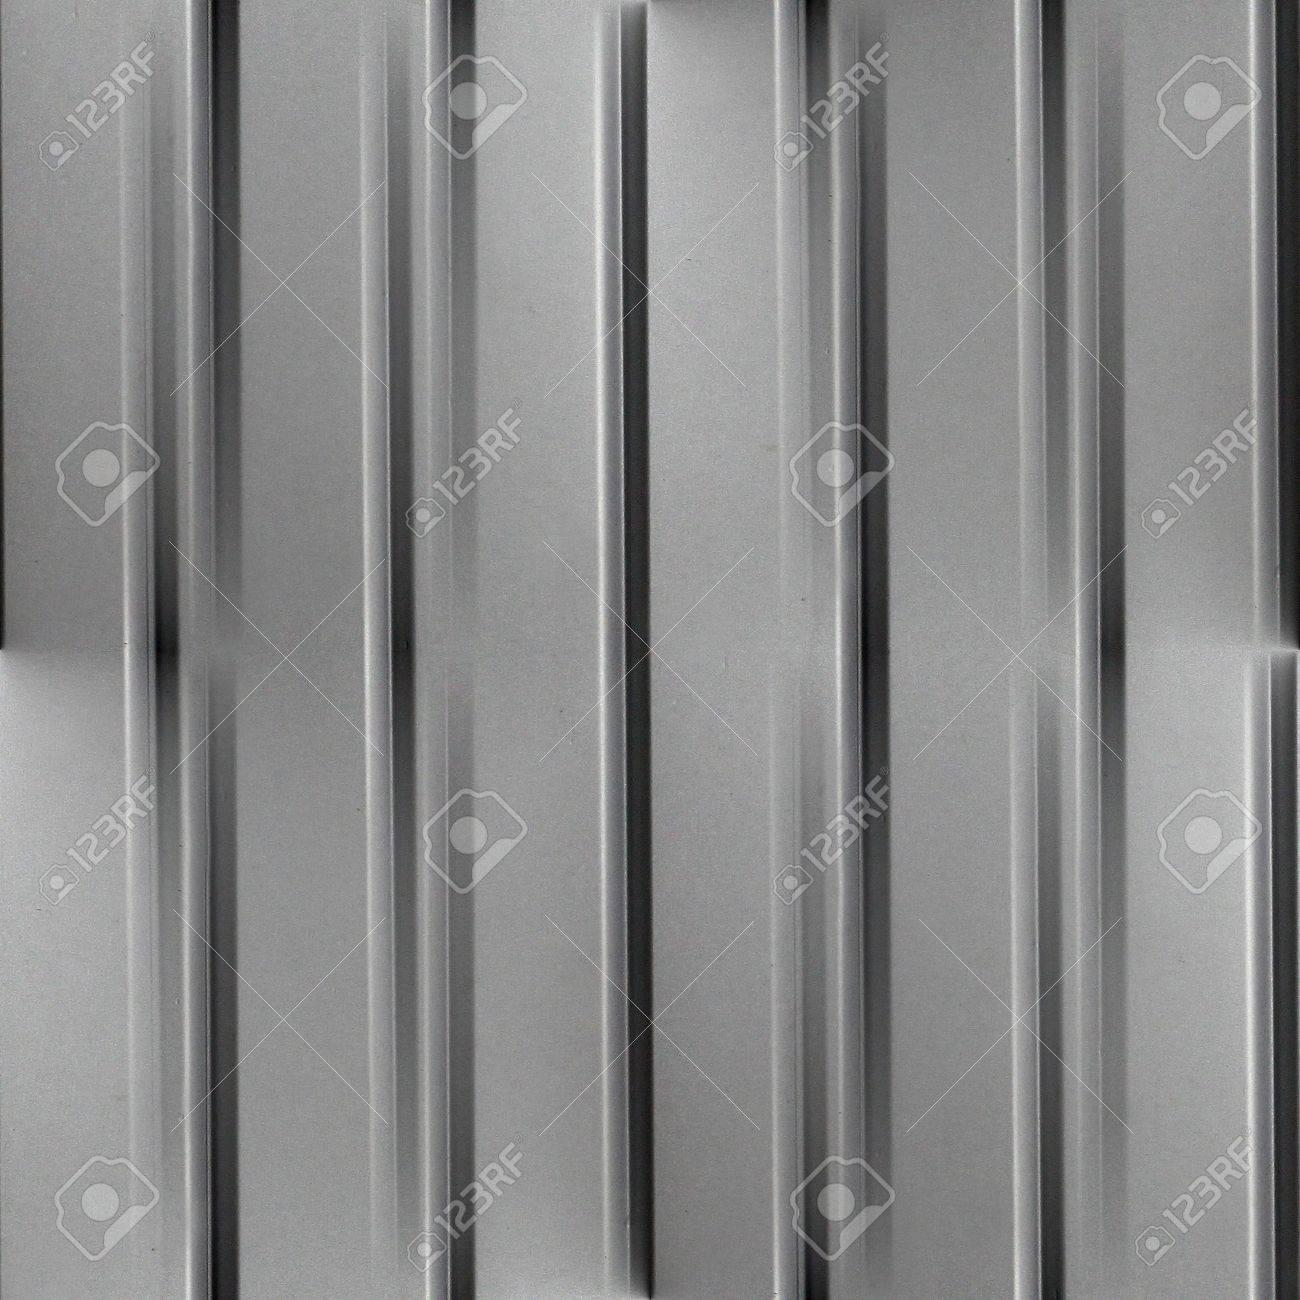 seamless metal wall texture. Seamless Metal Background Iron Steel Sheet Texture Abstract Metallic Corrugated Silver Pattern Stock Photo - 21555413 Wall